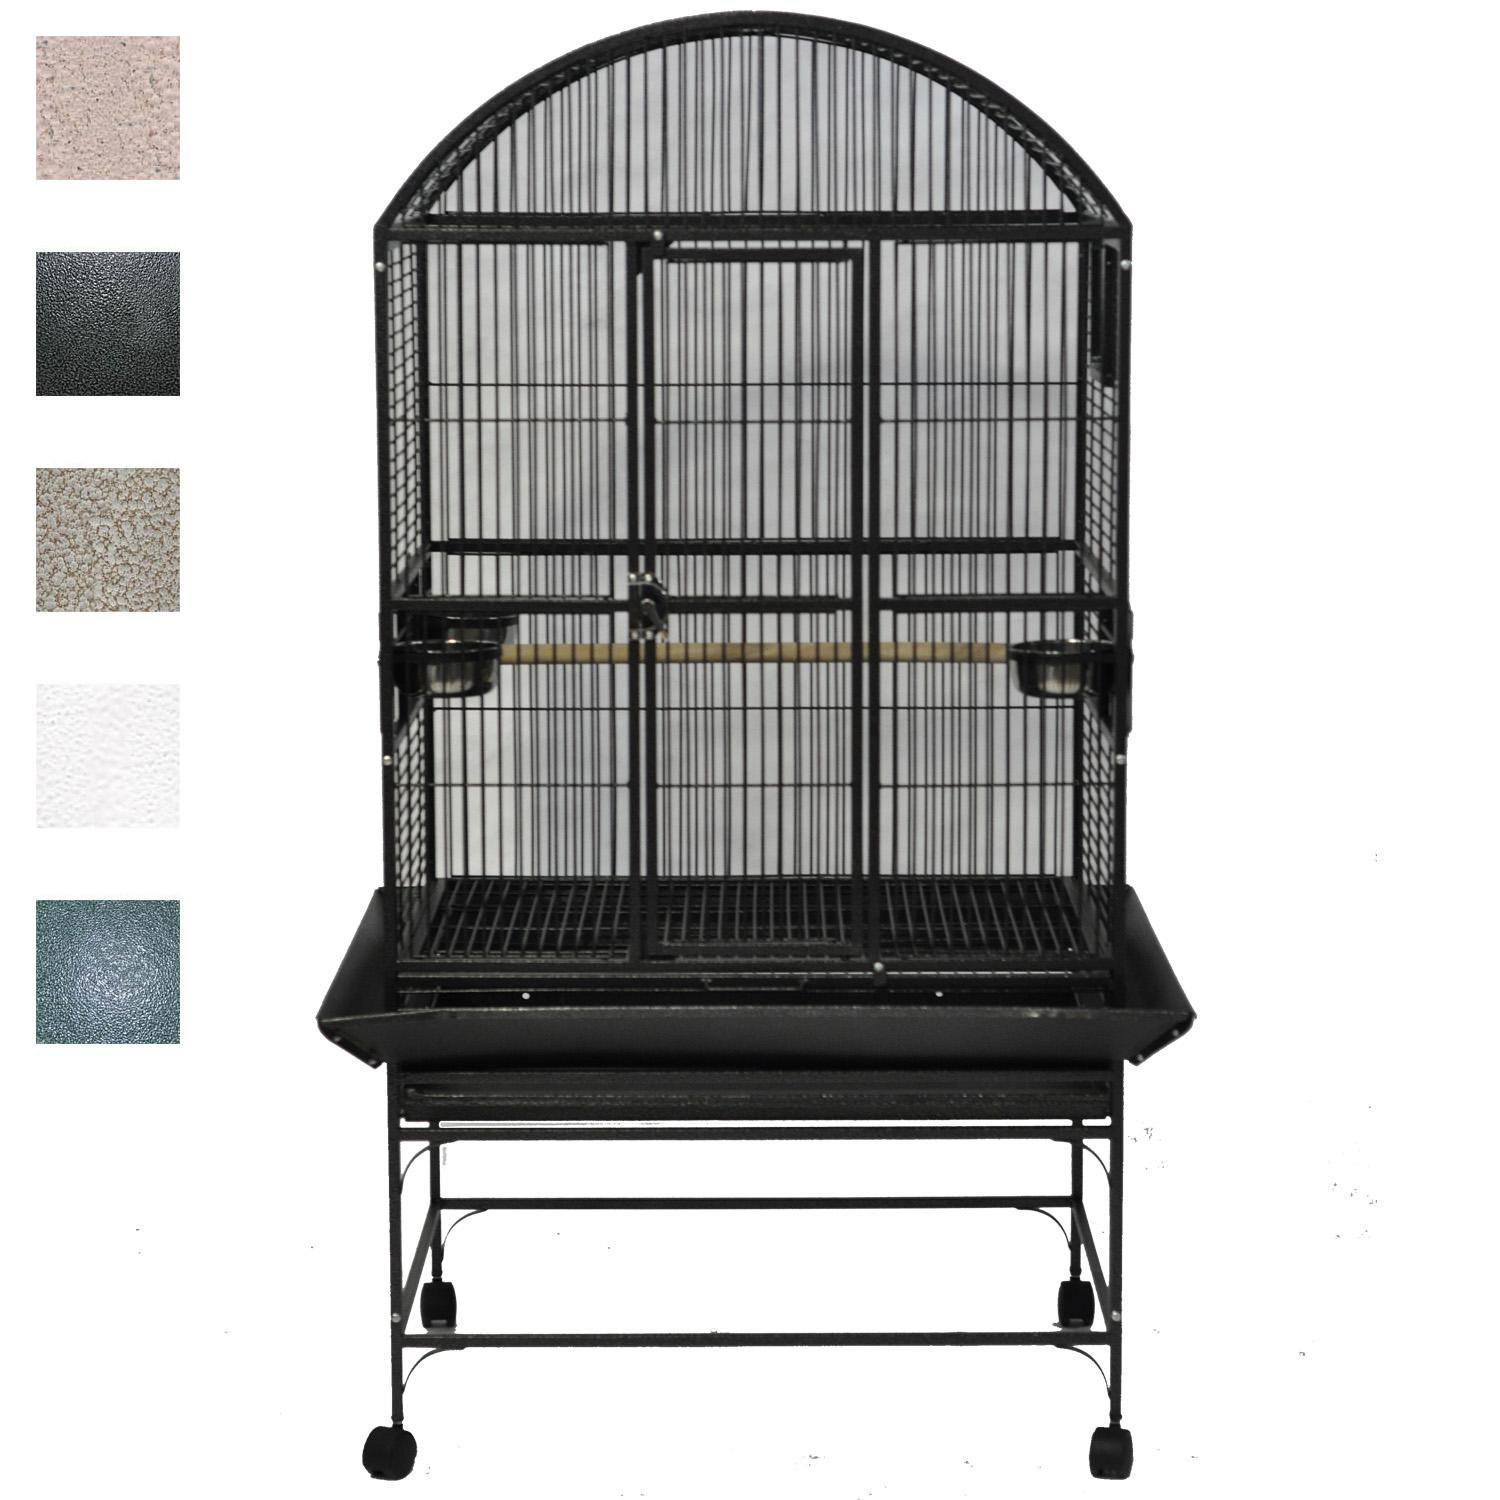 A&E Cage Company Palace Dometop Bird Cage in Black